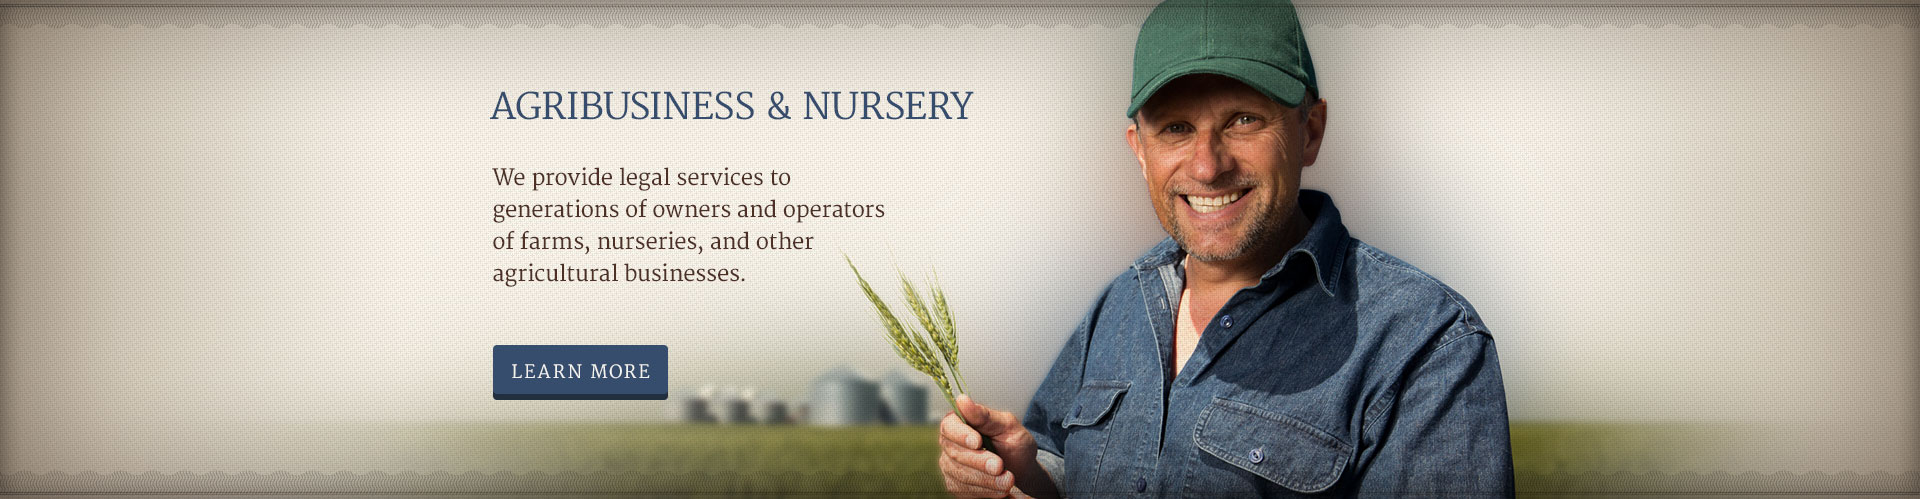 AGRIBUSINESS & NURSERY - We provide legal services to generations of owners and operators of farms, nurseries, and other agricultural businesses.